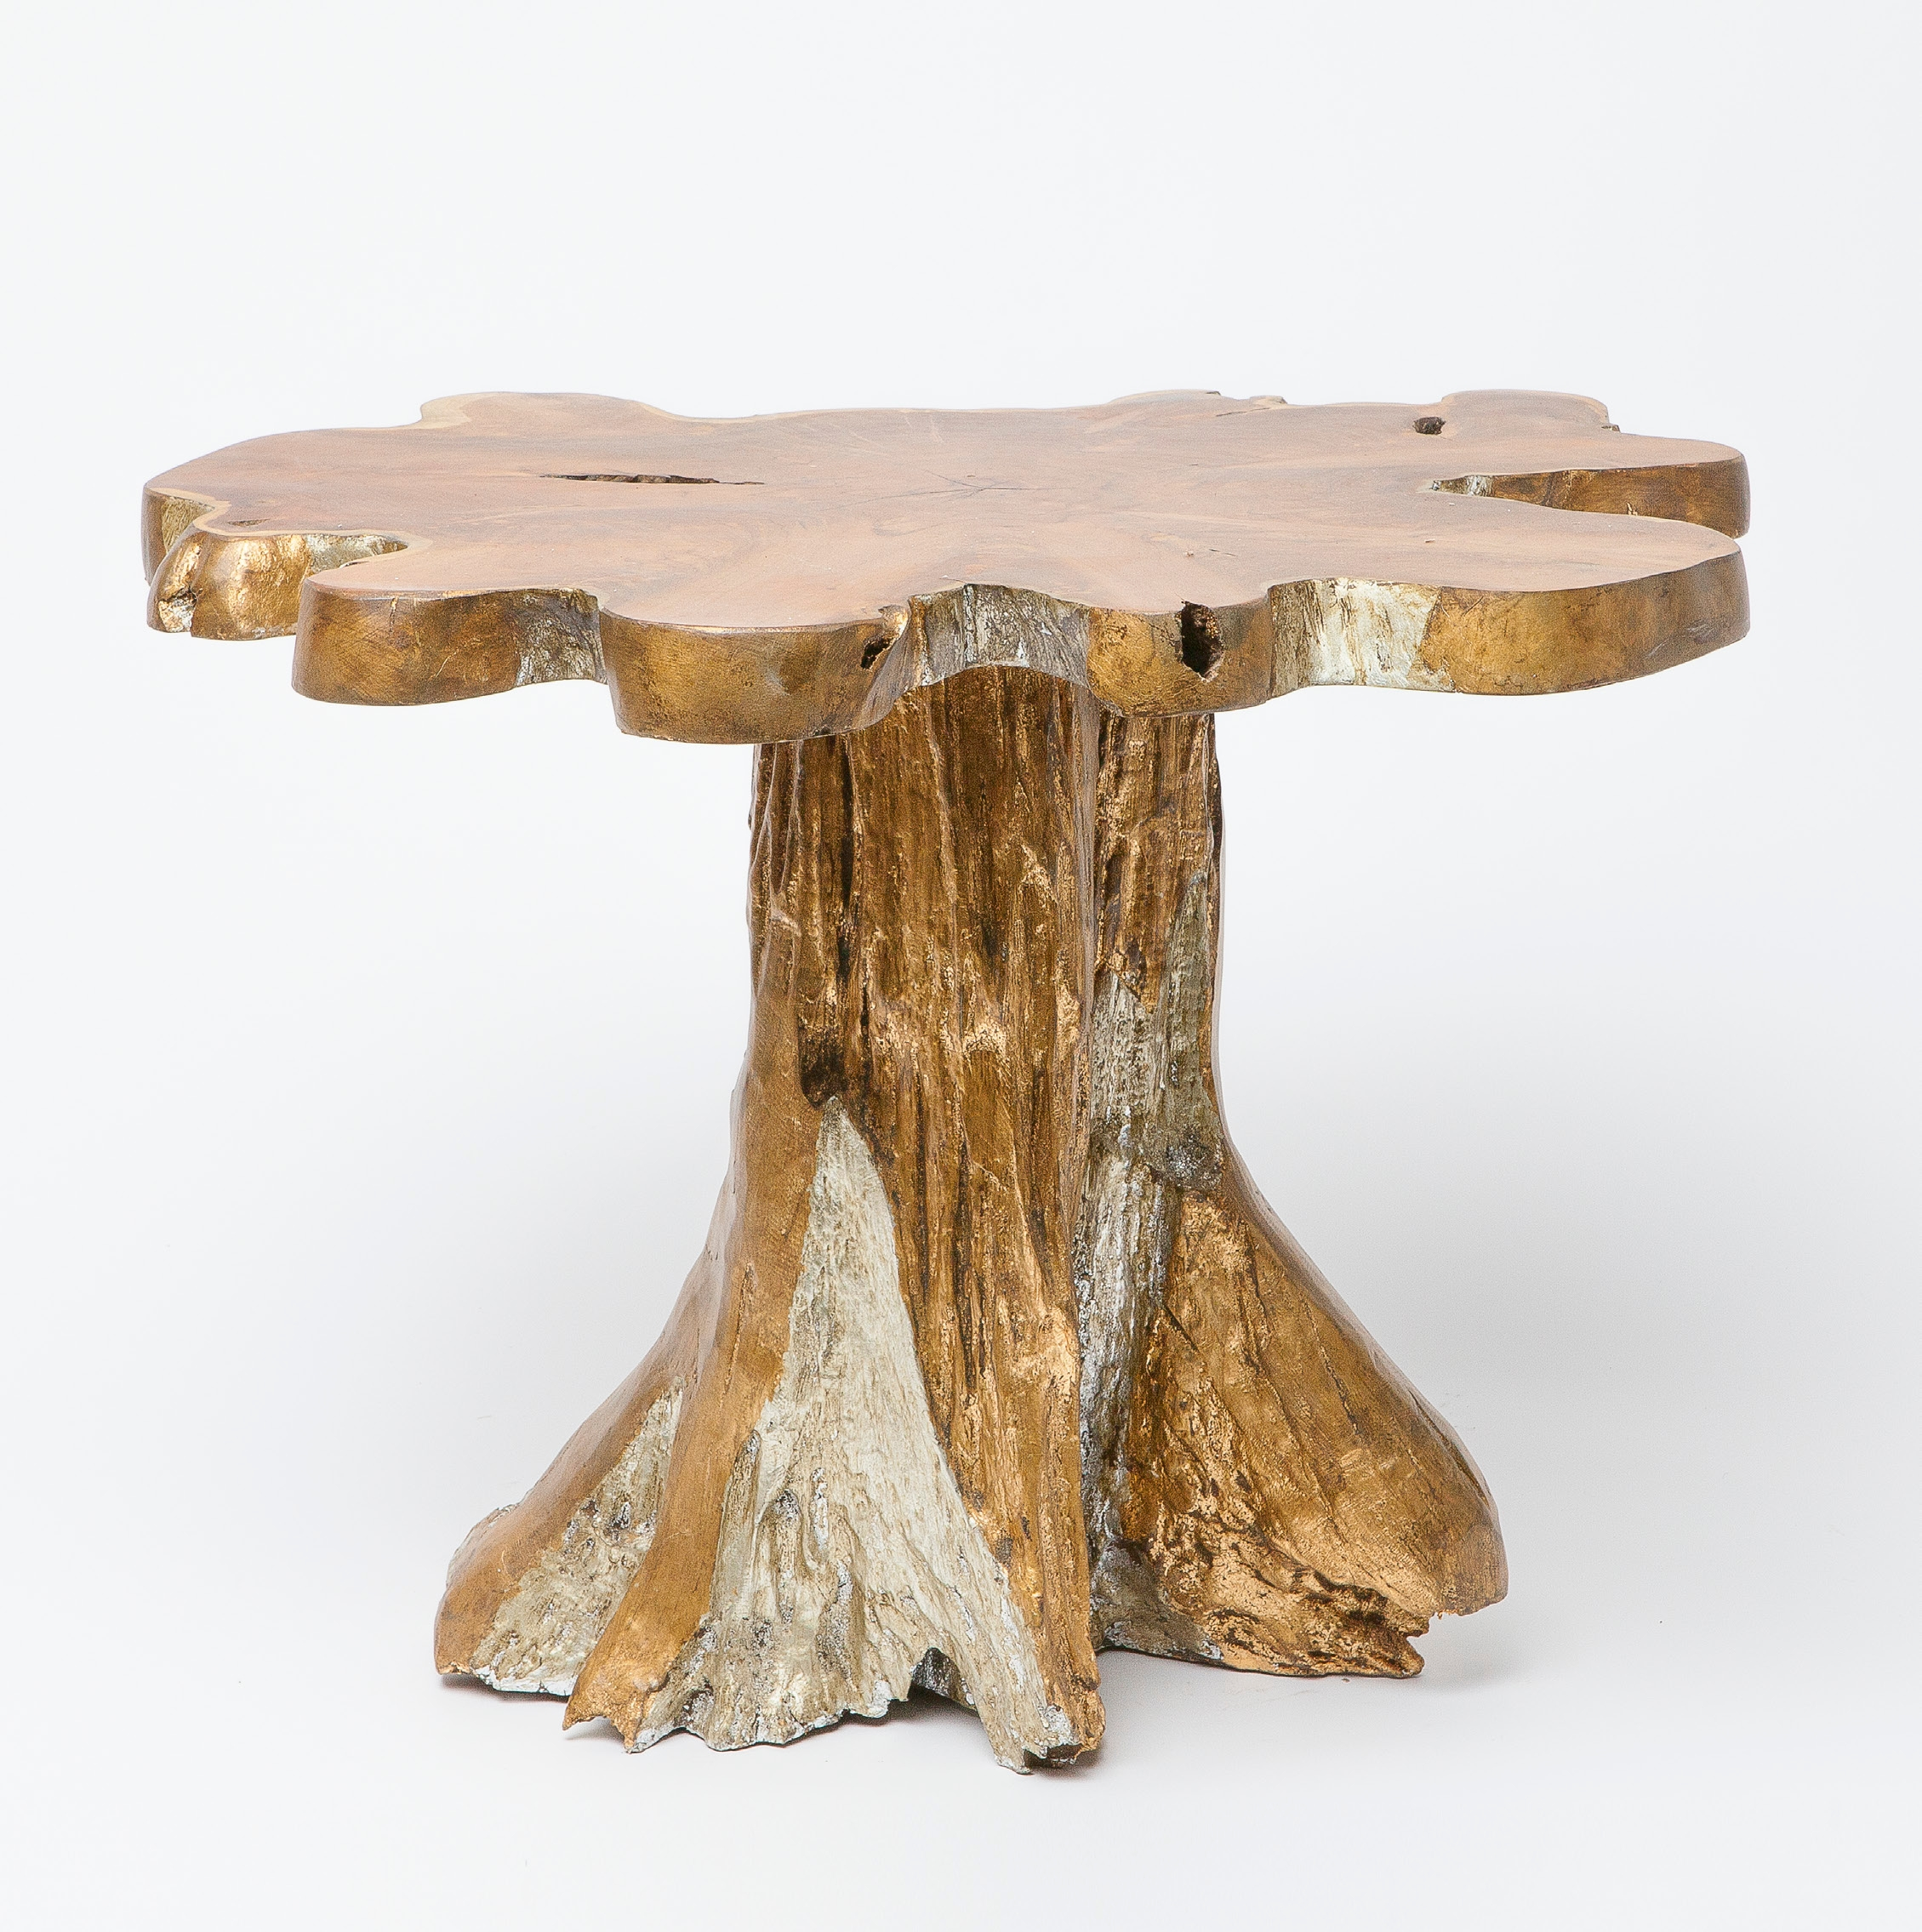 jessa teak root side table mecox gardens fnst tree trunk accent patio dining clearance reclaimed trestle sauder harbor view bedroom chairs yellow home decor french antique